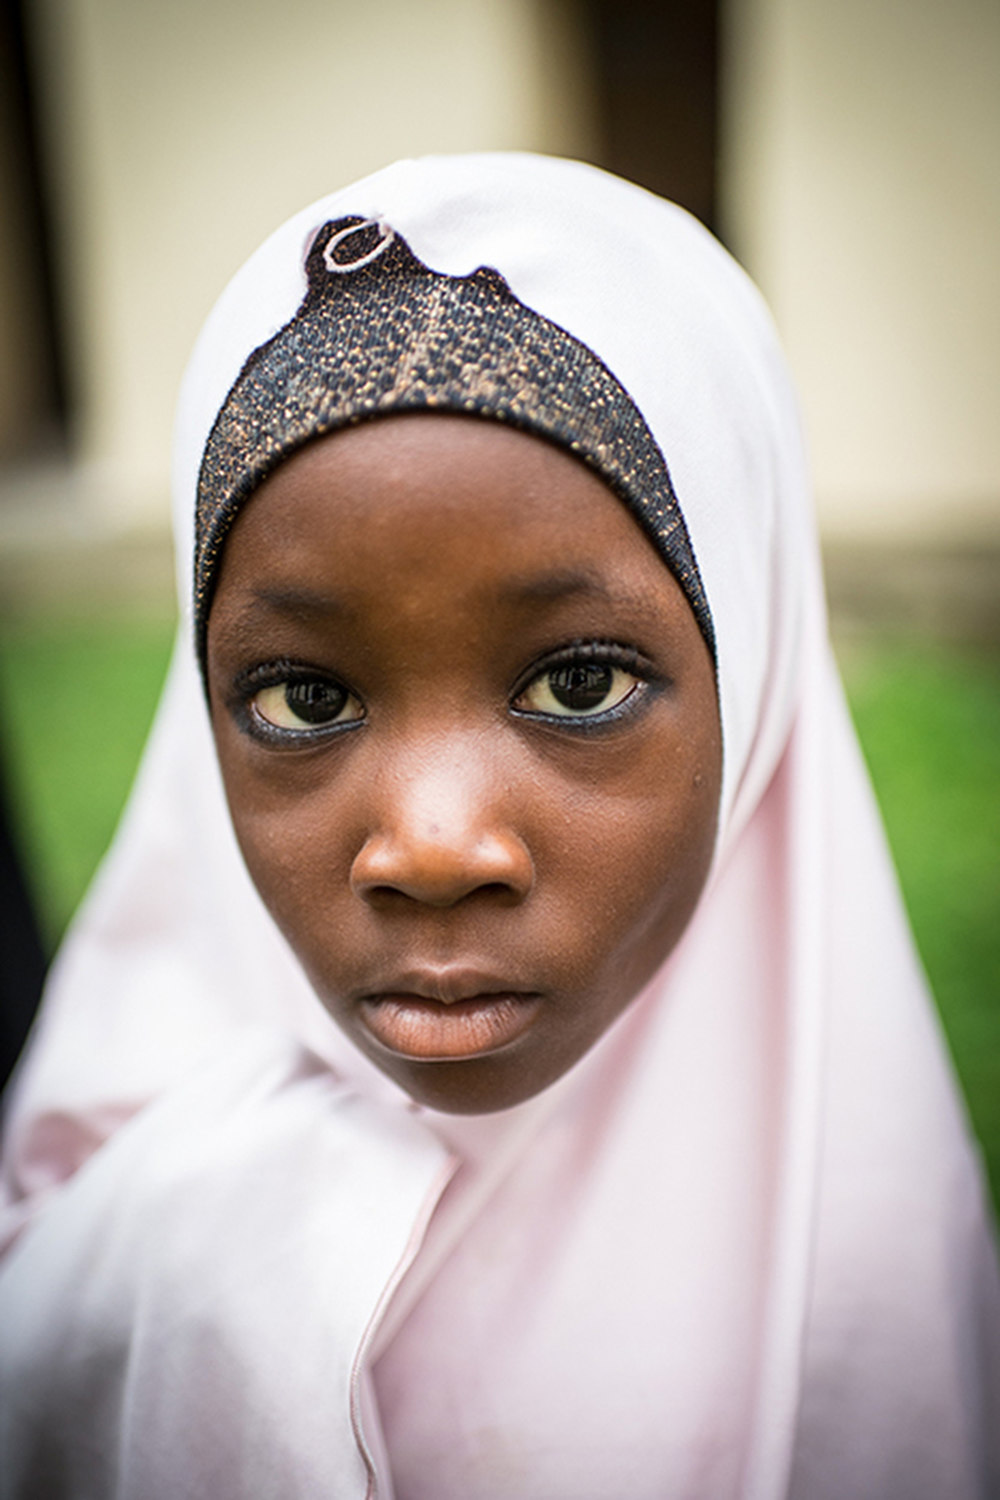 Aisha Hassan who visits the clinic with her mother so she can receive shots for child spacing in Lokoja, Nigeria.